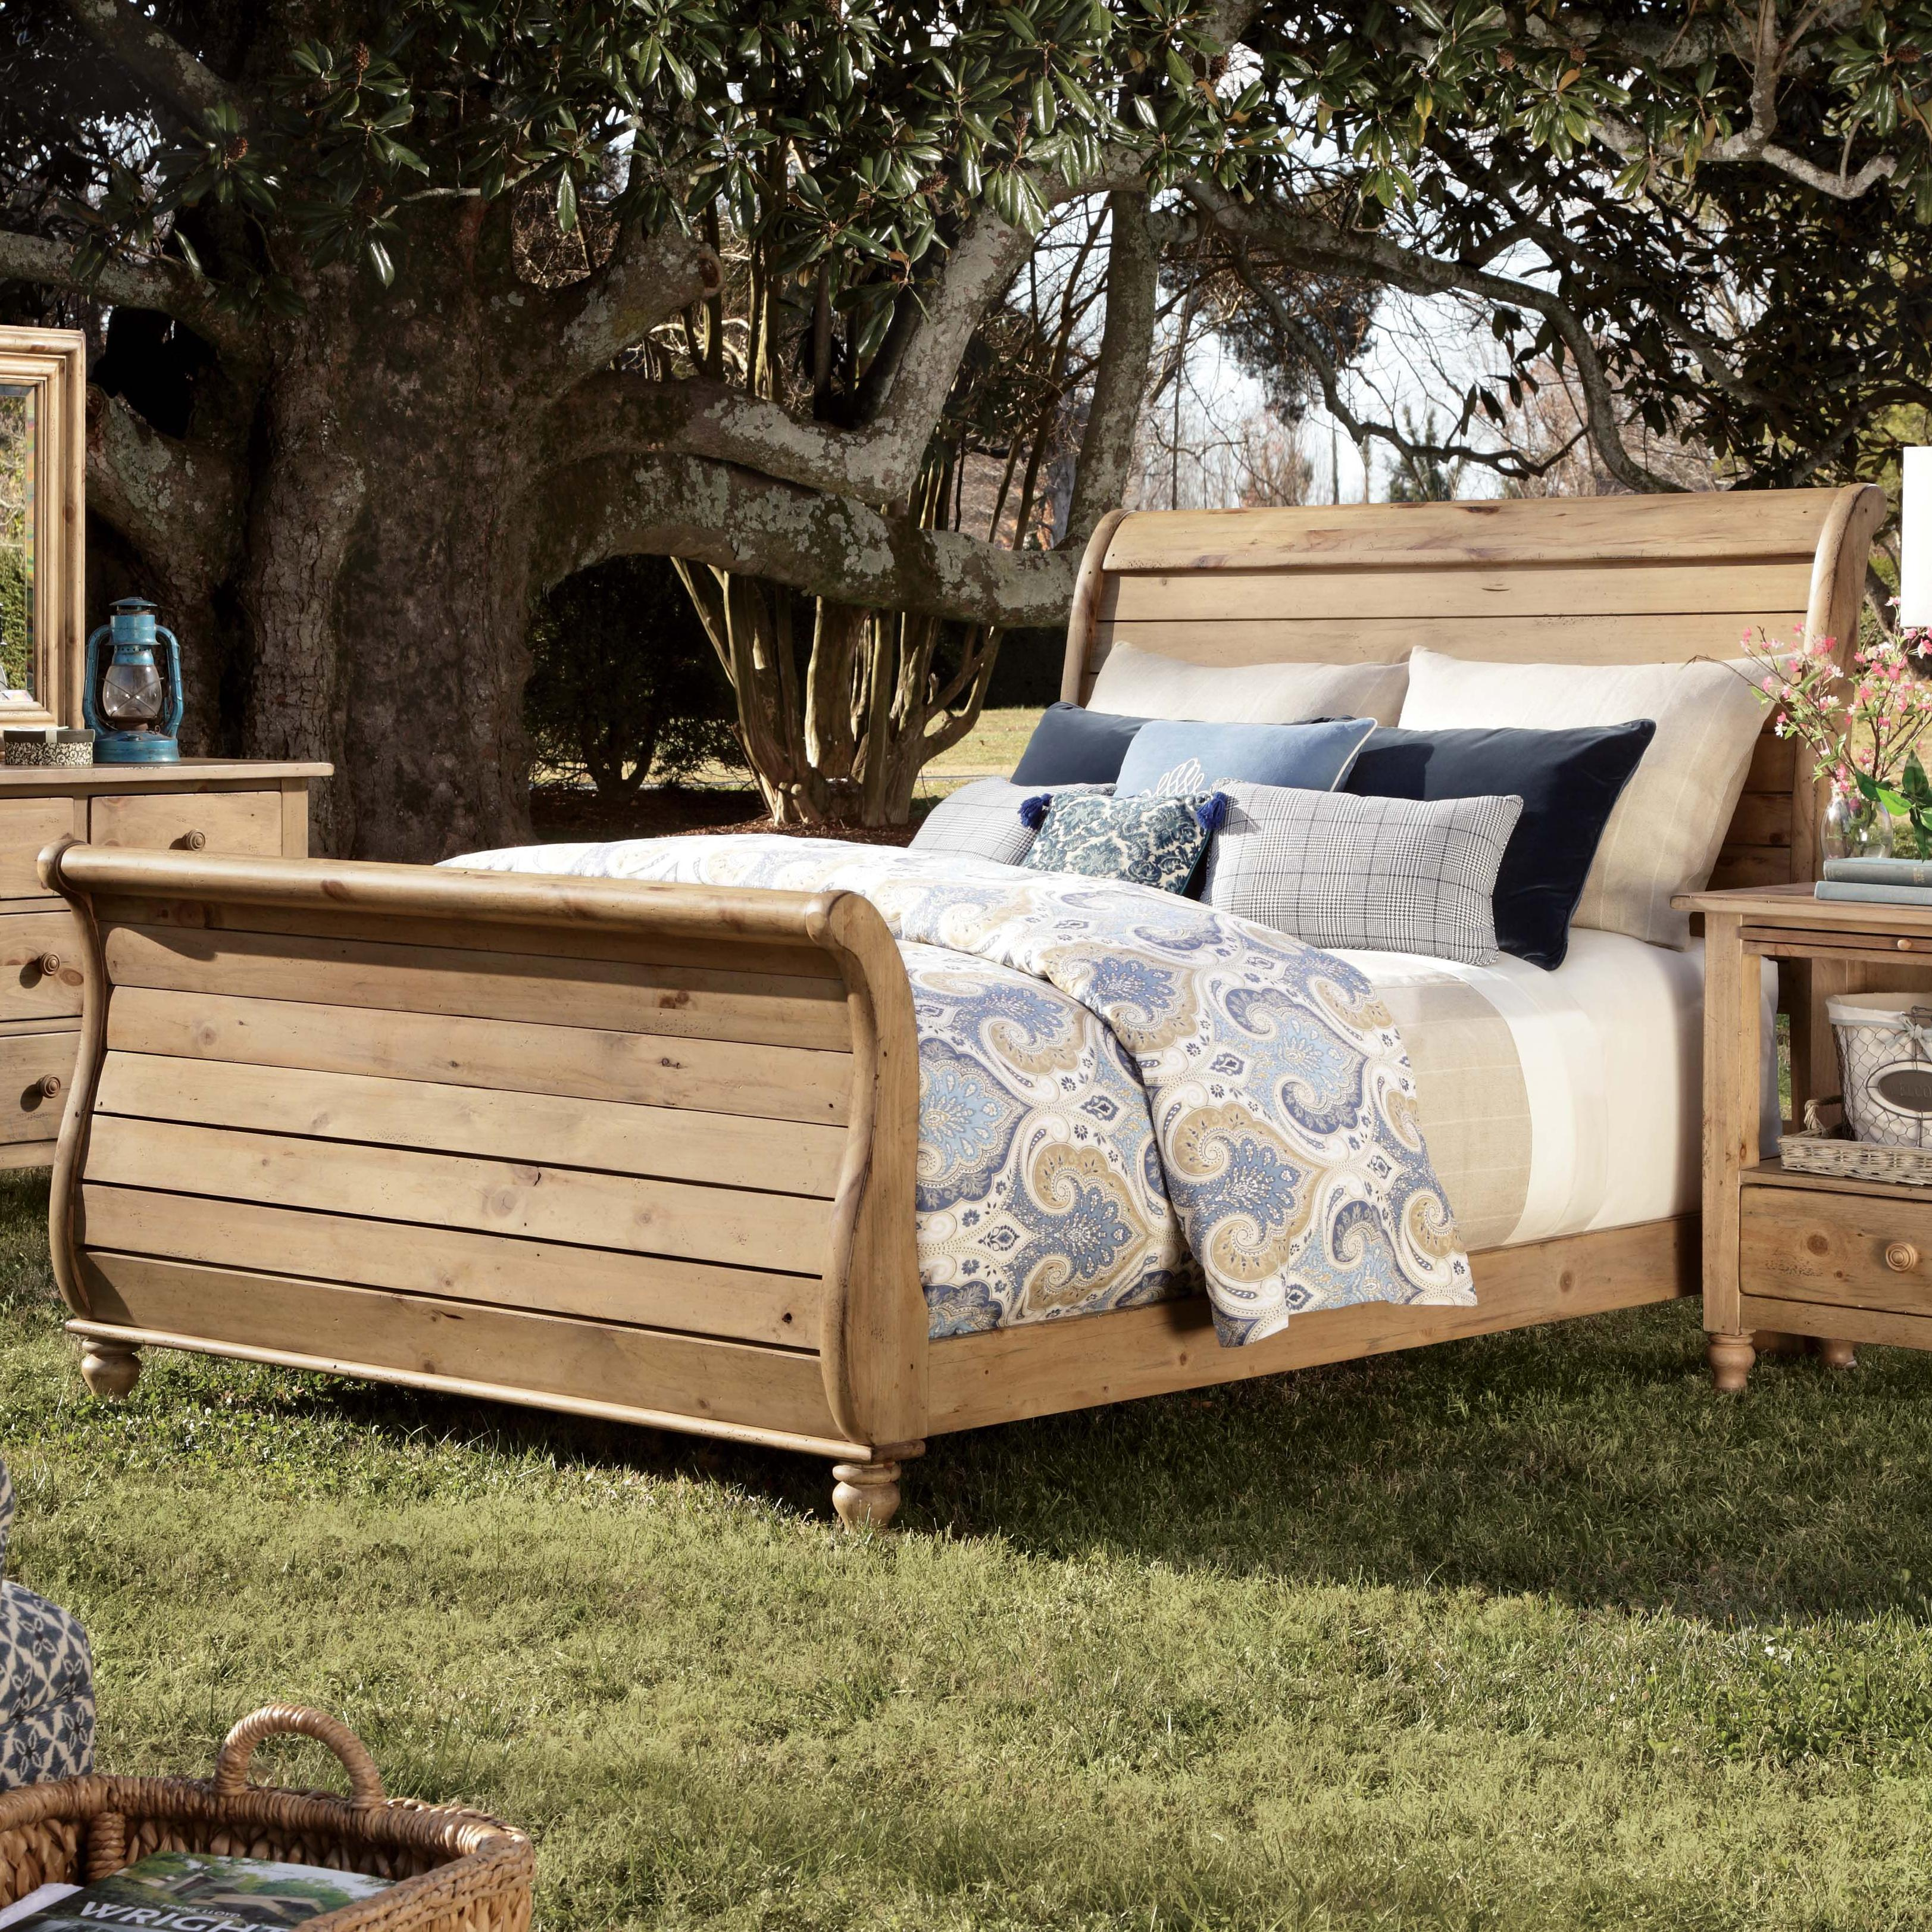 354654880 additionally Country Unfinished Hickory Wood King Size Headboard Which Is Having Barn Door Design moreover Rustic Wood Outdoor Furniture Plans as well Bed frame as well Painted Pine Bedroom Furniture. on rustic pine king bed